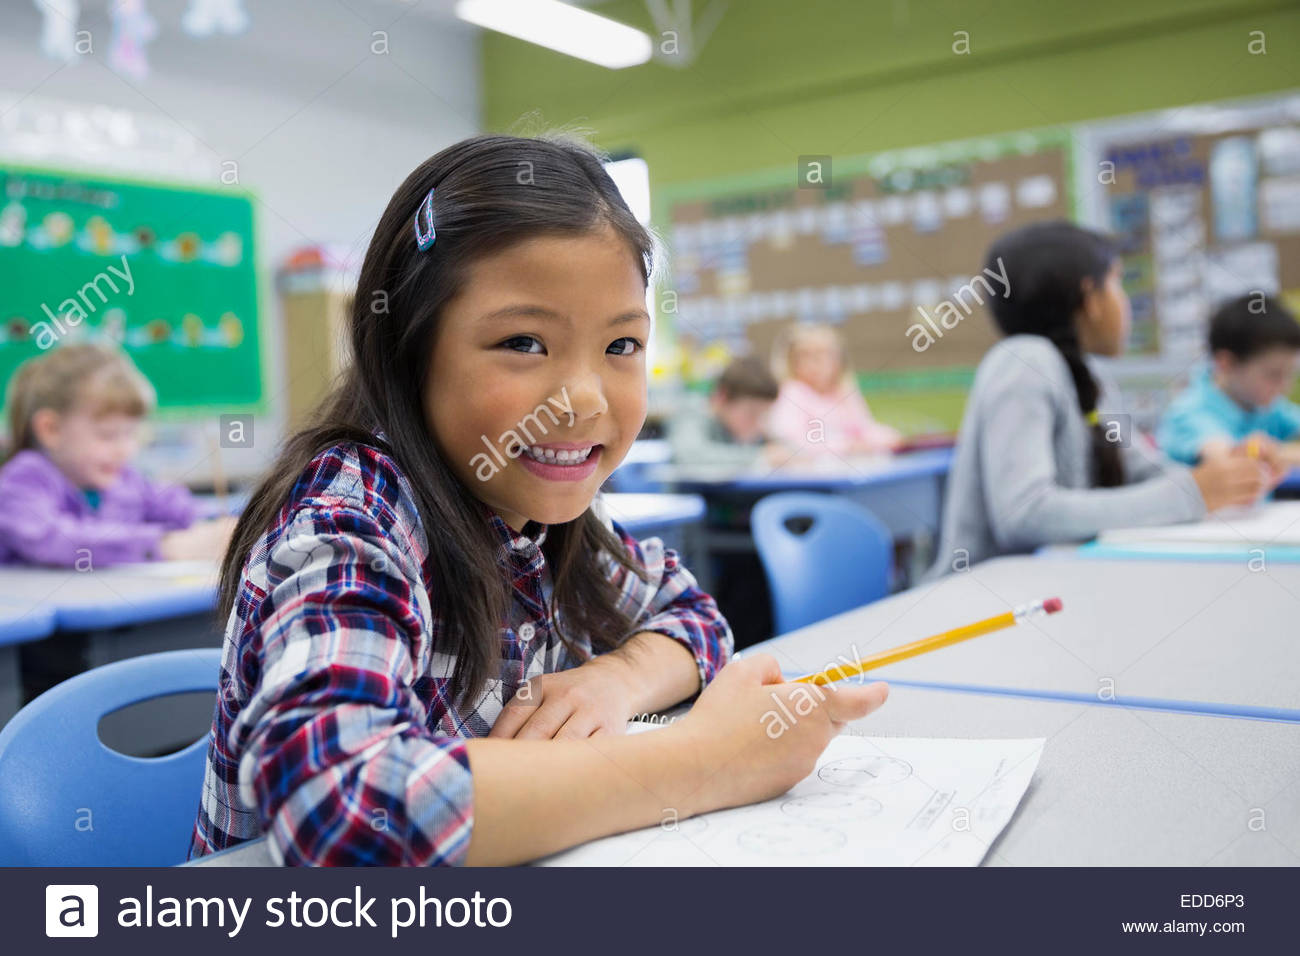 Portrait of elementary student at desk Photo Stock